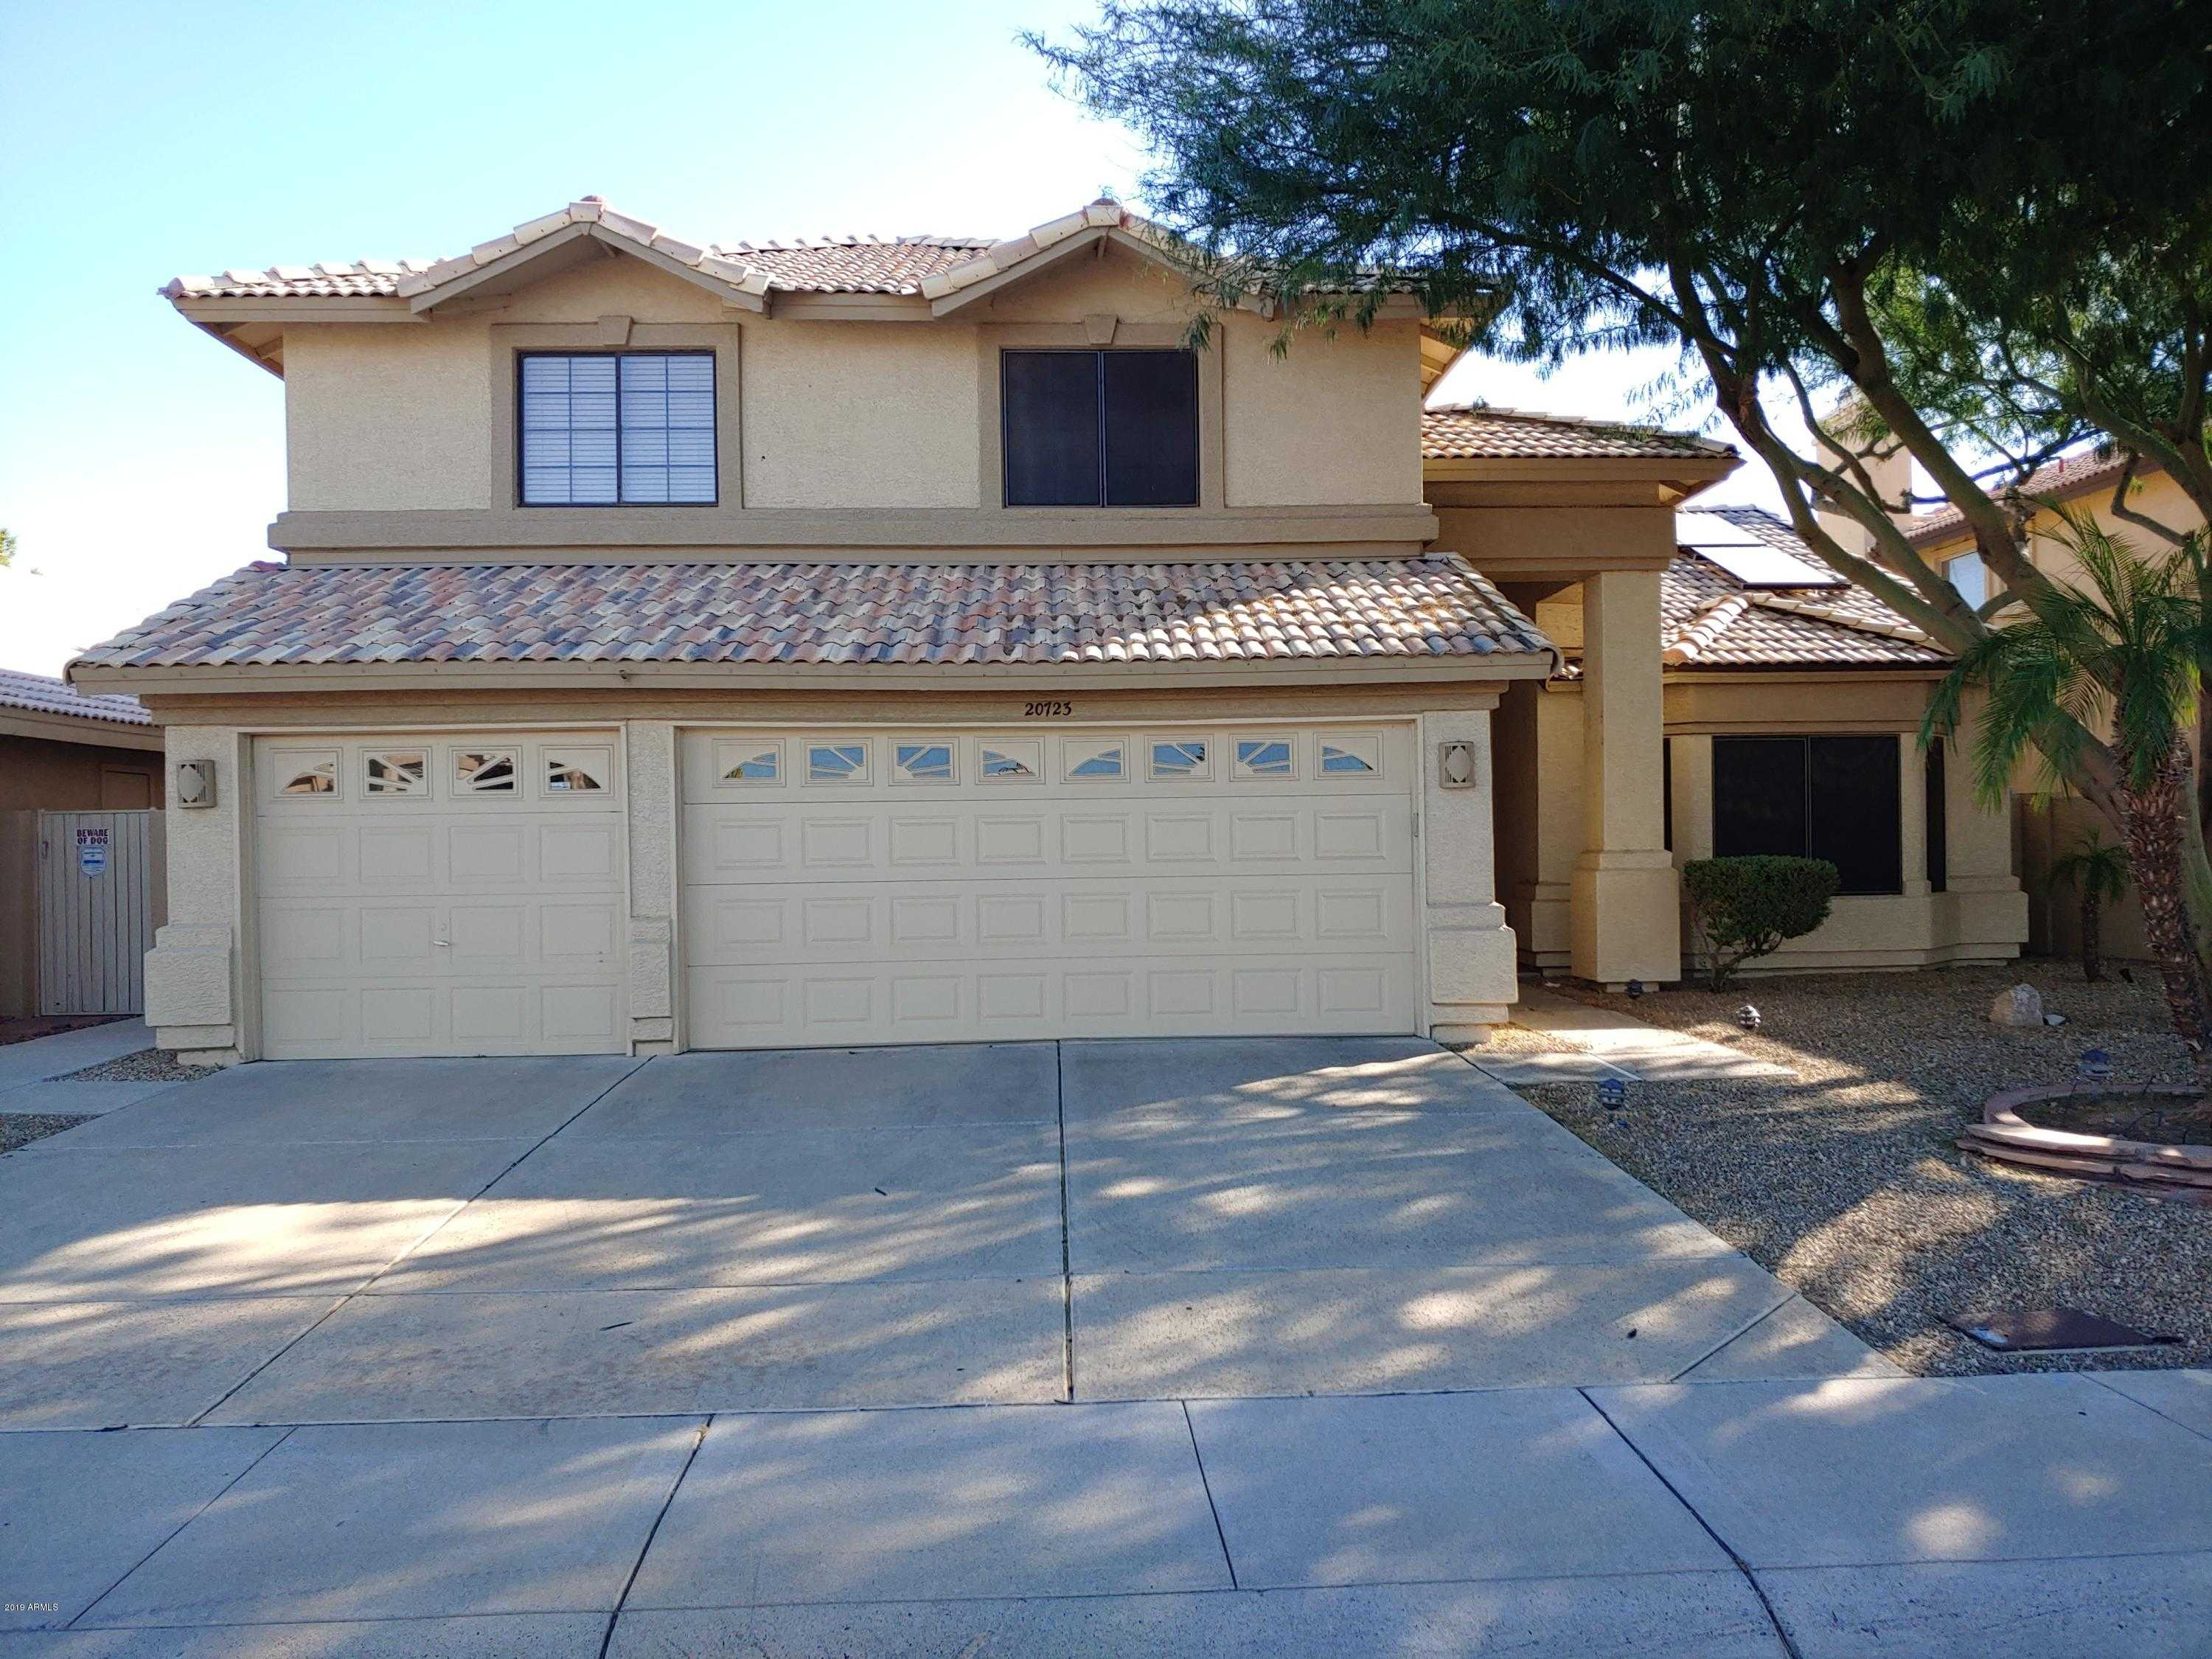 $700,000 - 4Br/3Ba - Home for Sale in Arrowhead Lakes 3 Lot 239-333 Tr A-b, Glendale